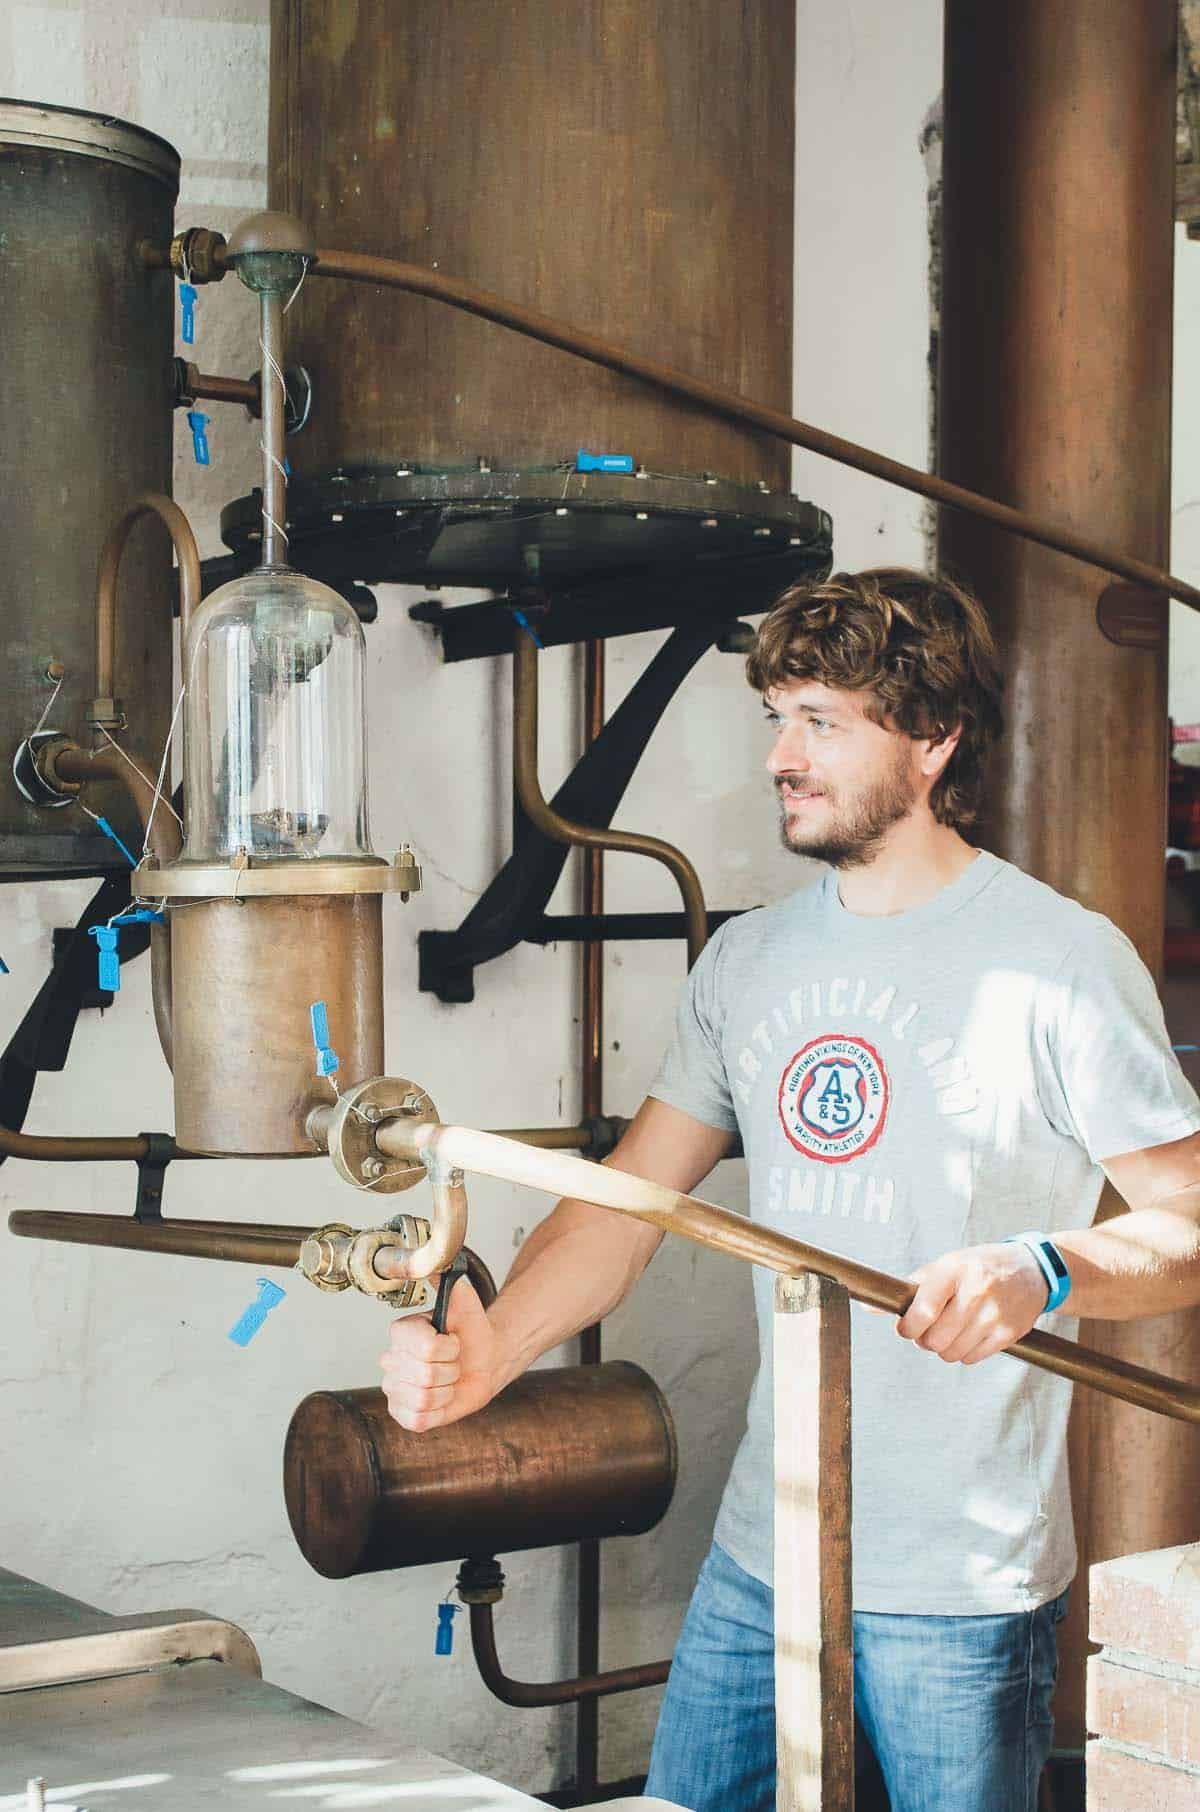 Behind the Scenes of a Grappa Distillery | Very EATalian